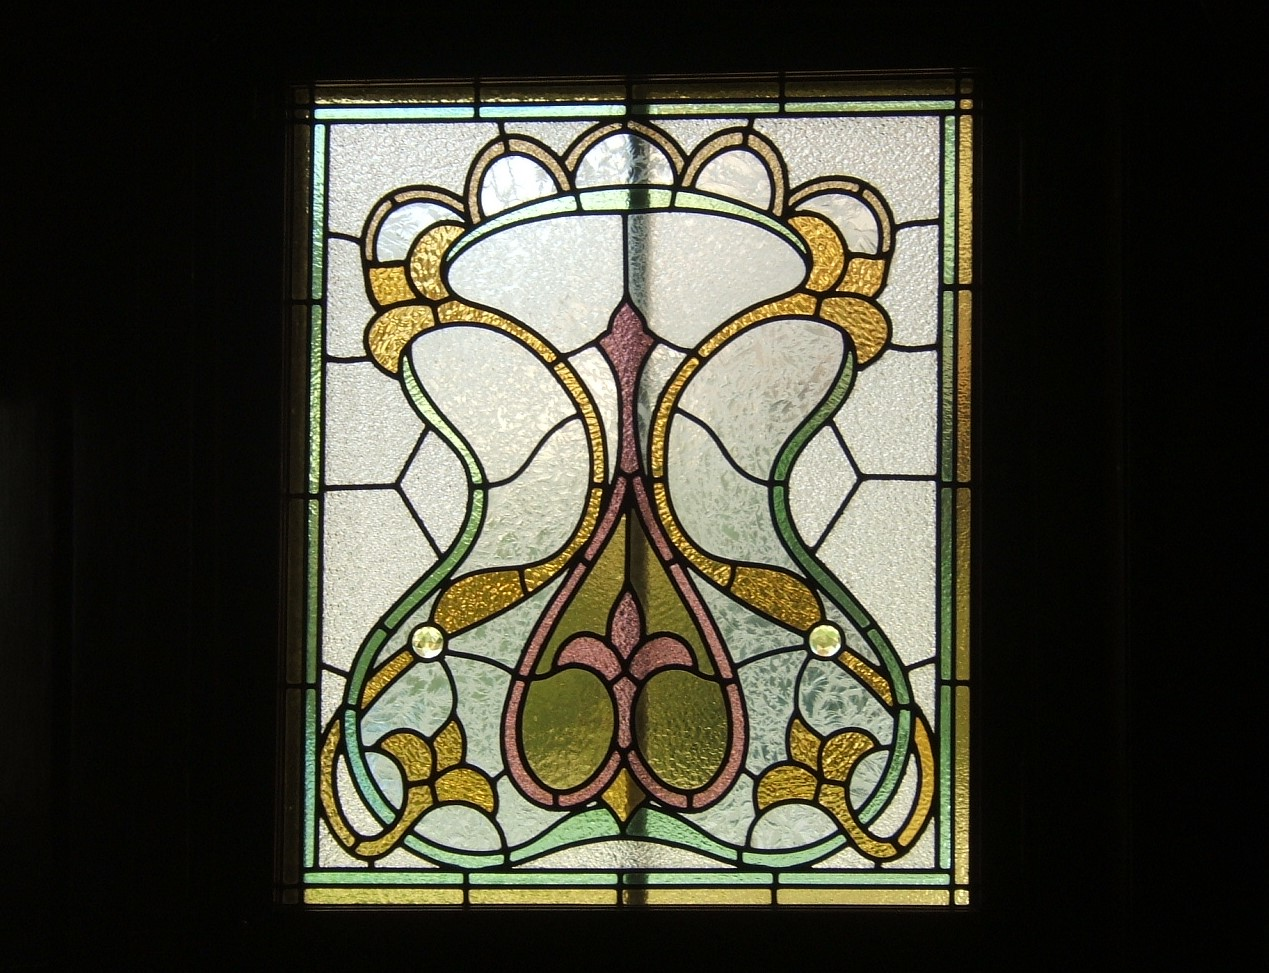 Yellow, red, green, and white stained glass window